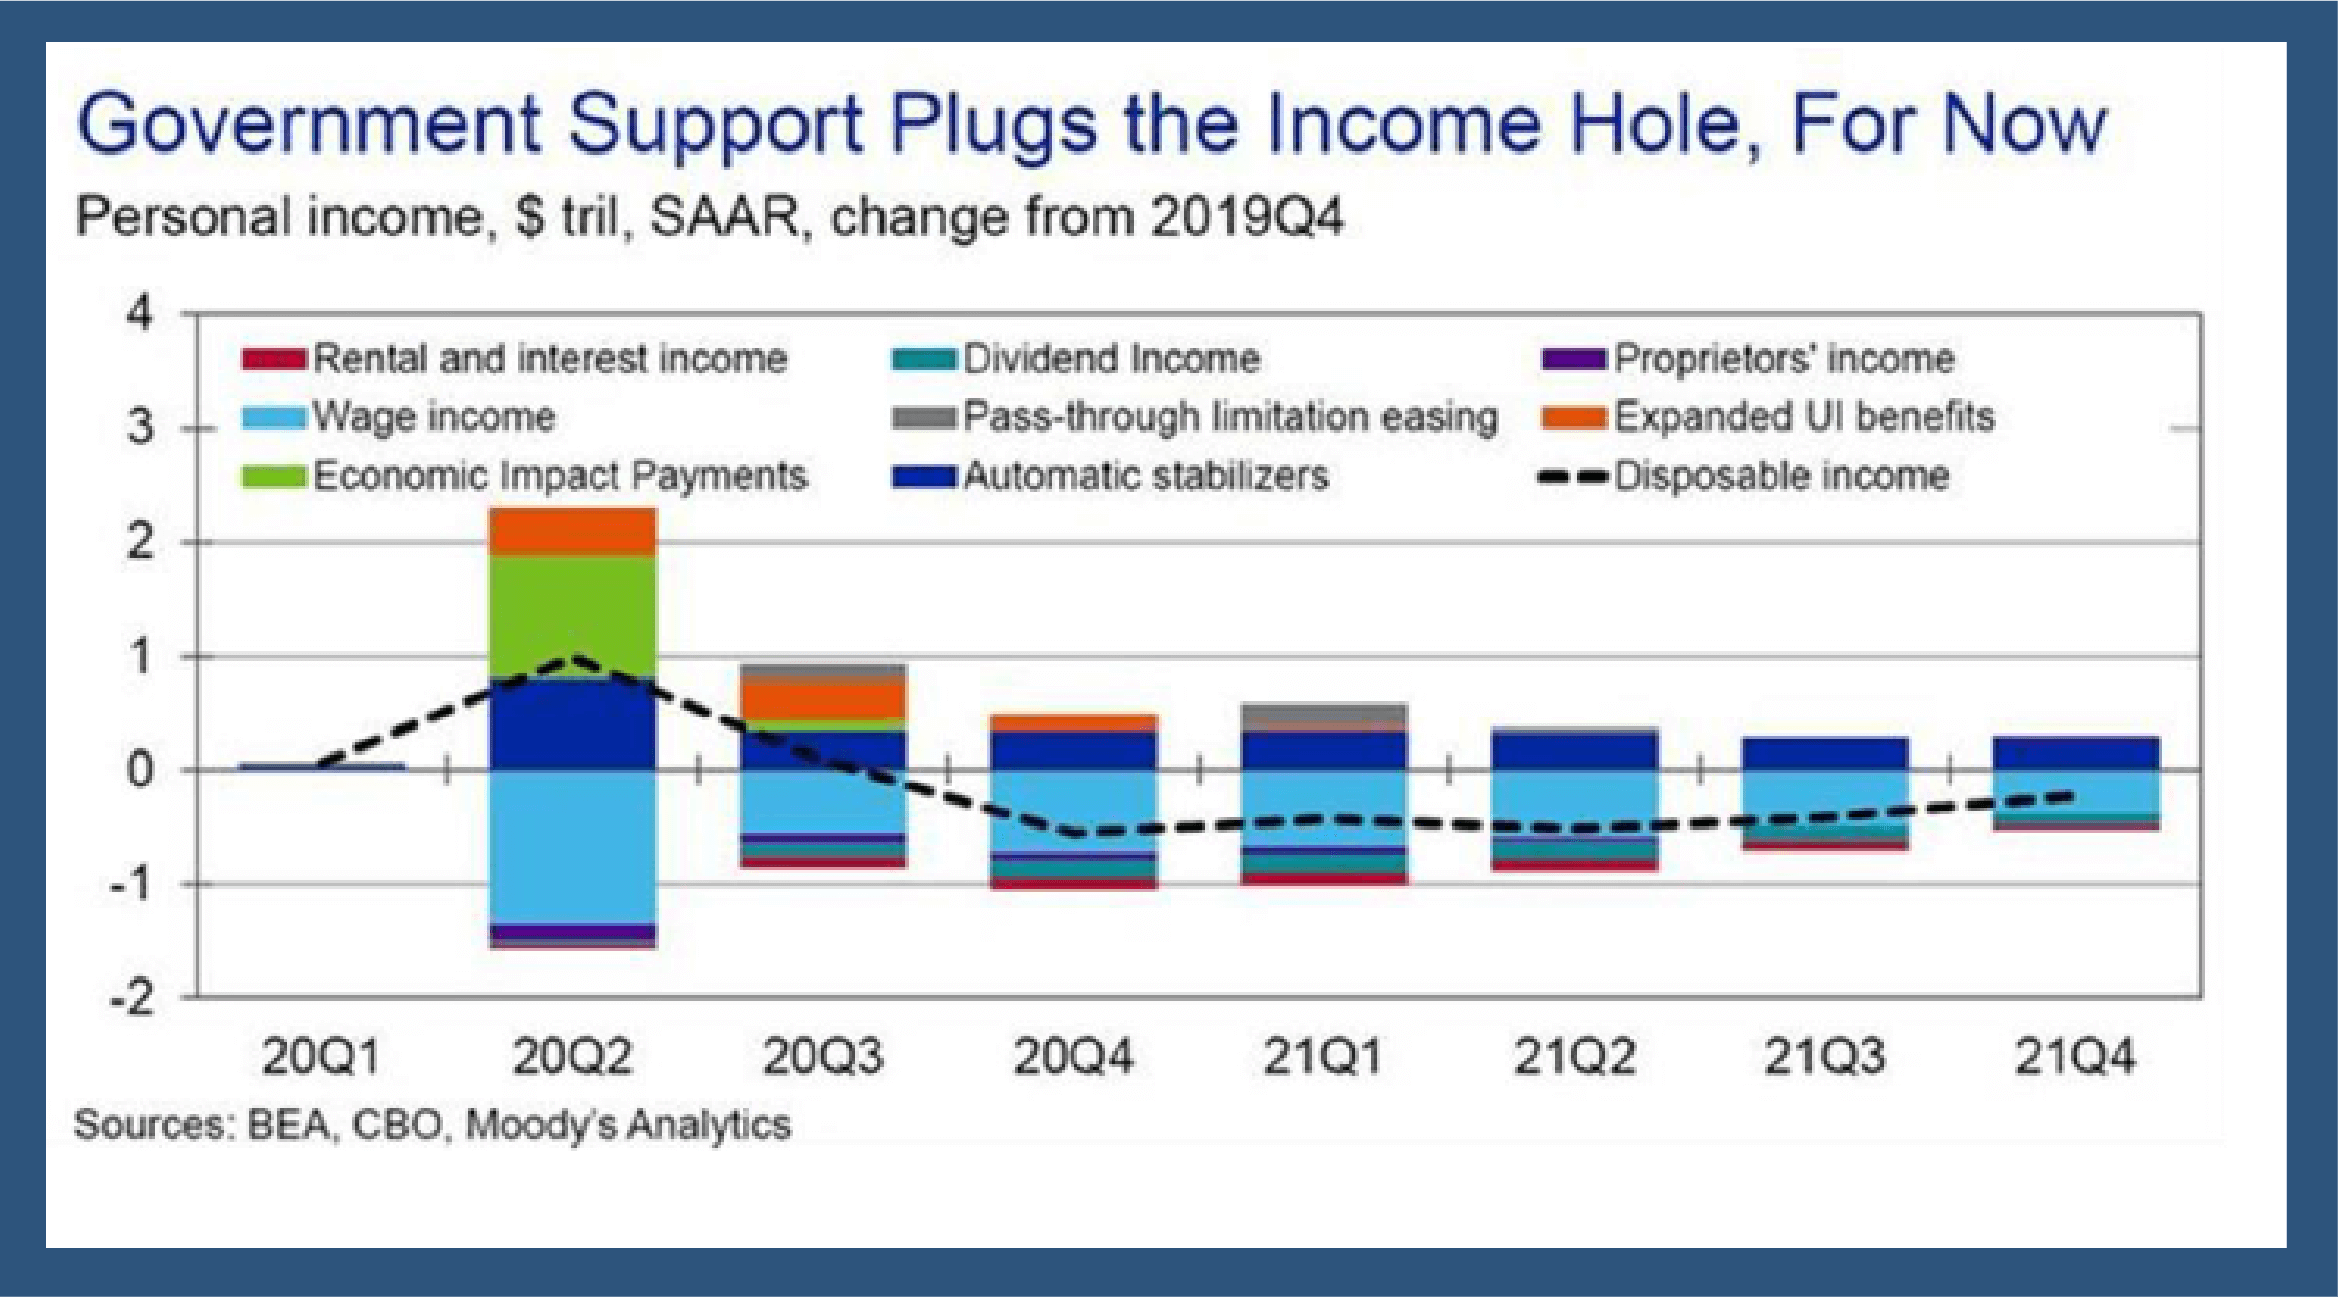 Government Support Plugs the Income Hole, For Now